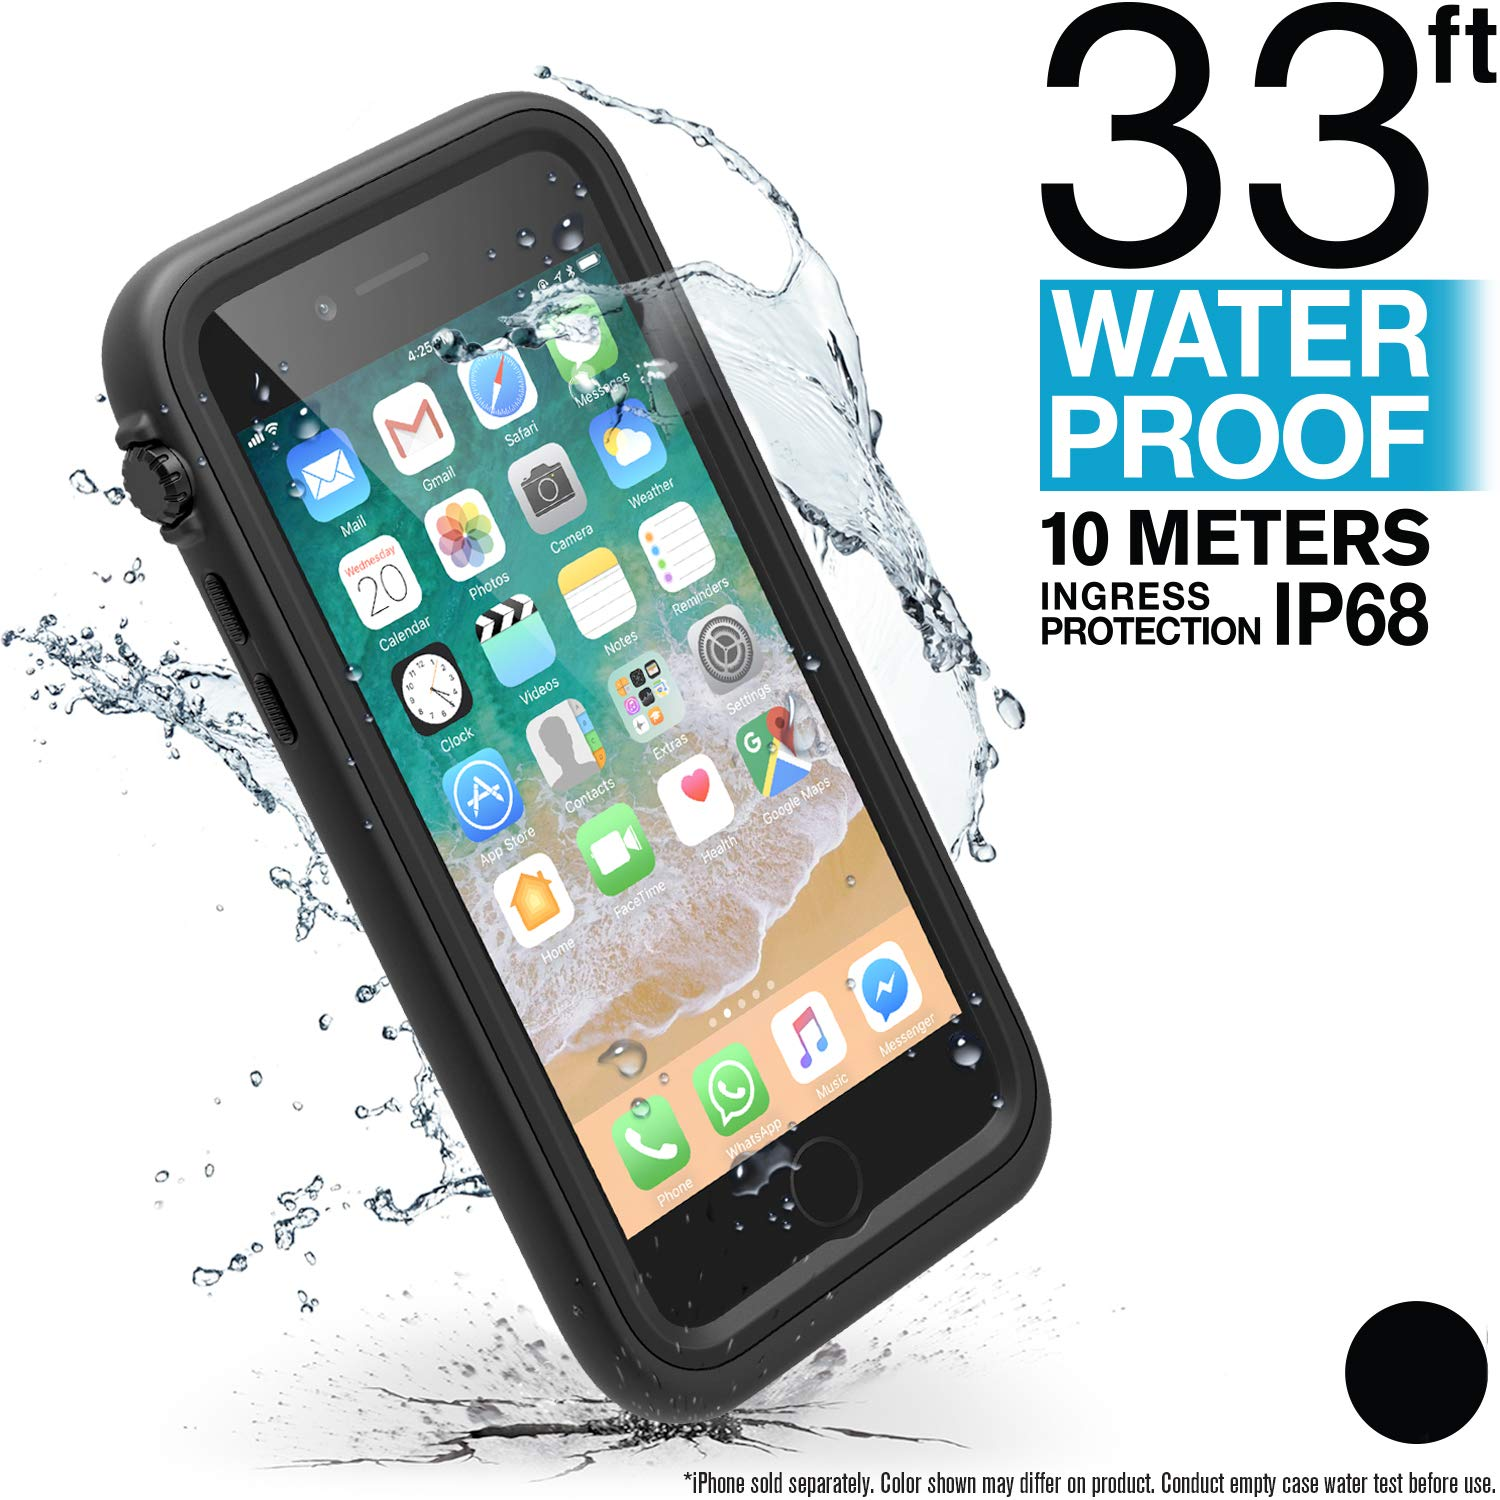 watch ceffd 13f55 Catalyst iPhone 8 Waterproof Case (Compatible with iPhone 7), Shock Proof,  Drop Proof, Slim, or Apple iPhone 8 (Works with iPhone 7) with Wrist ...